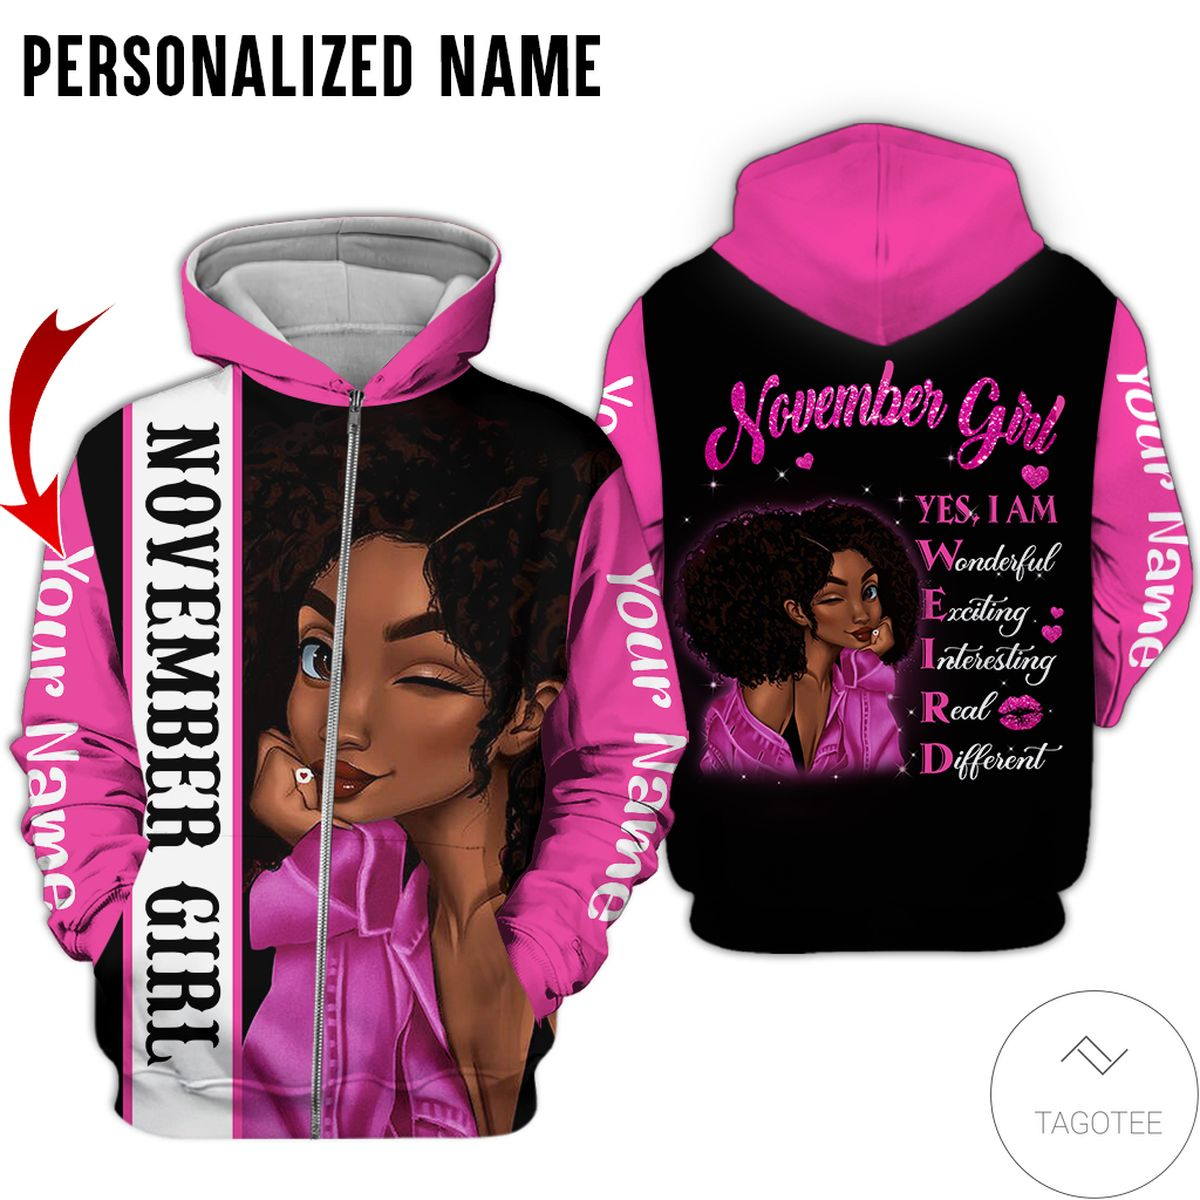 eBay Personalized Name November Girl Yes I Am All Over Print Hoodie